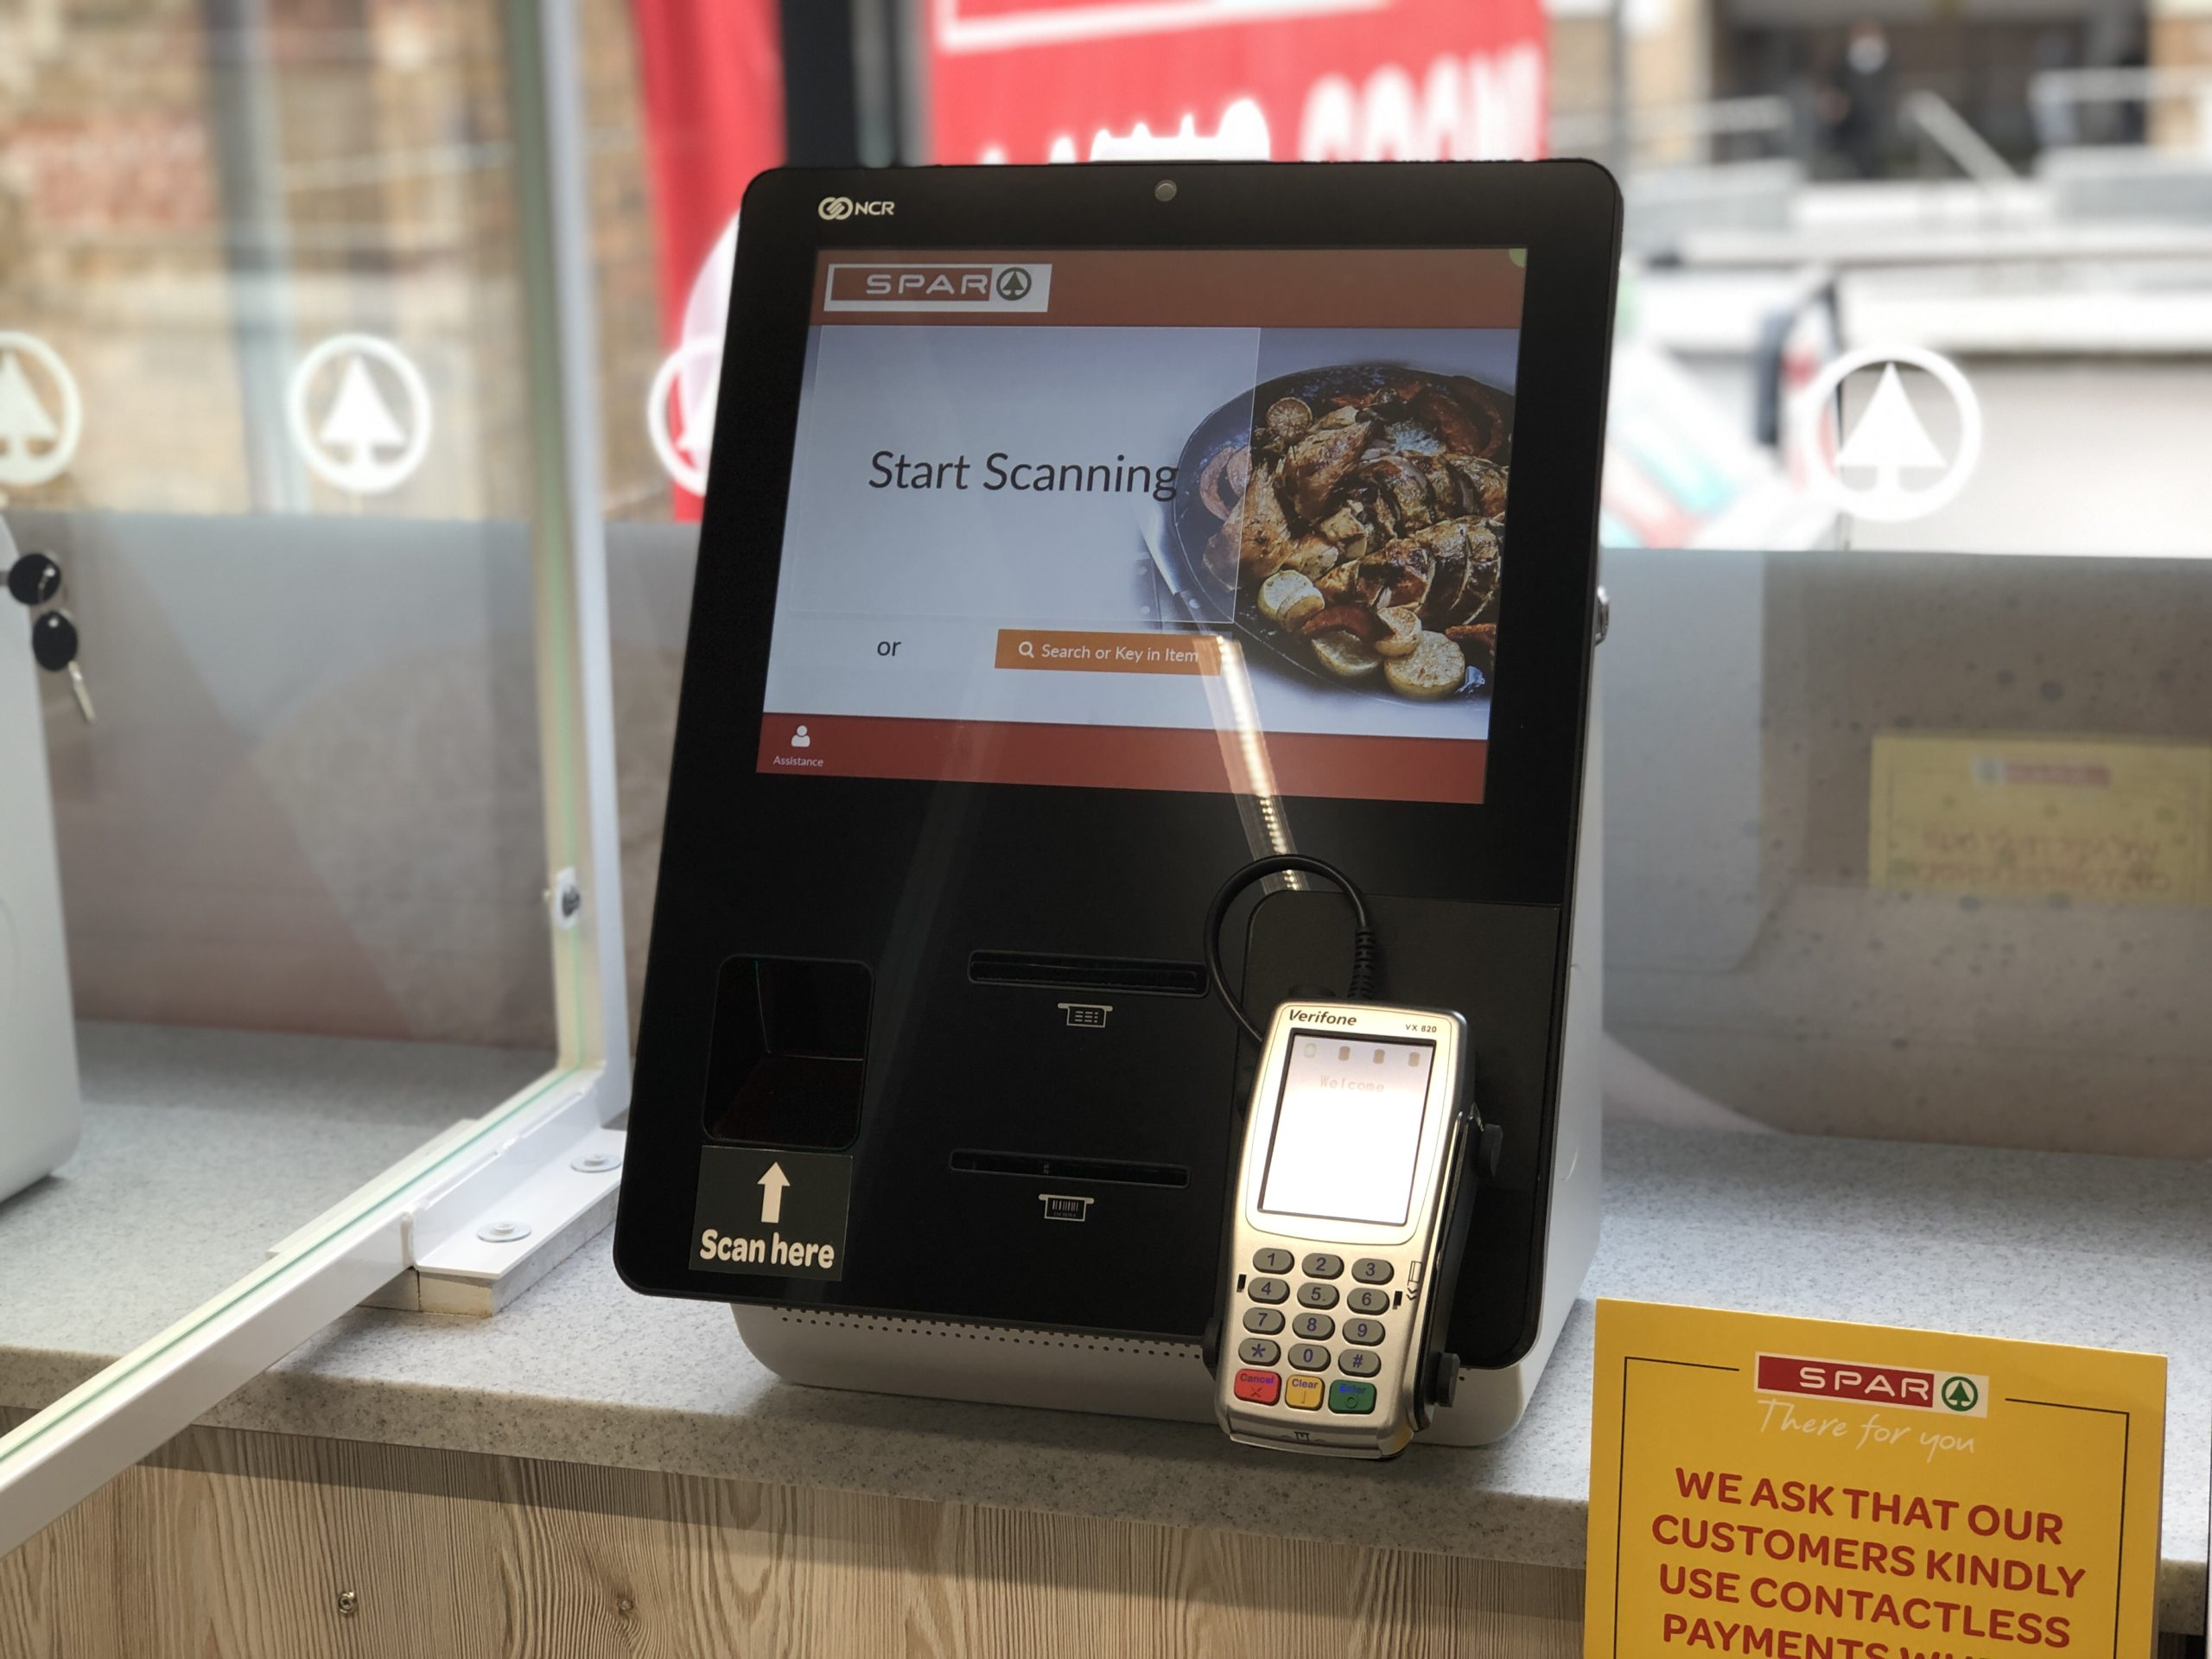 NCR named Global Leader in Self-Checkout for the 18th Consecutive Year